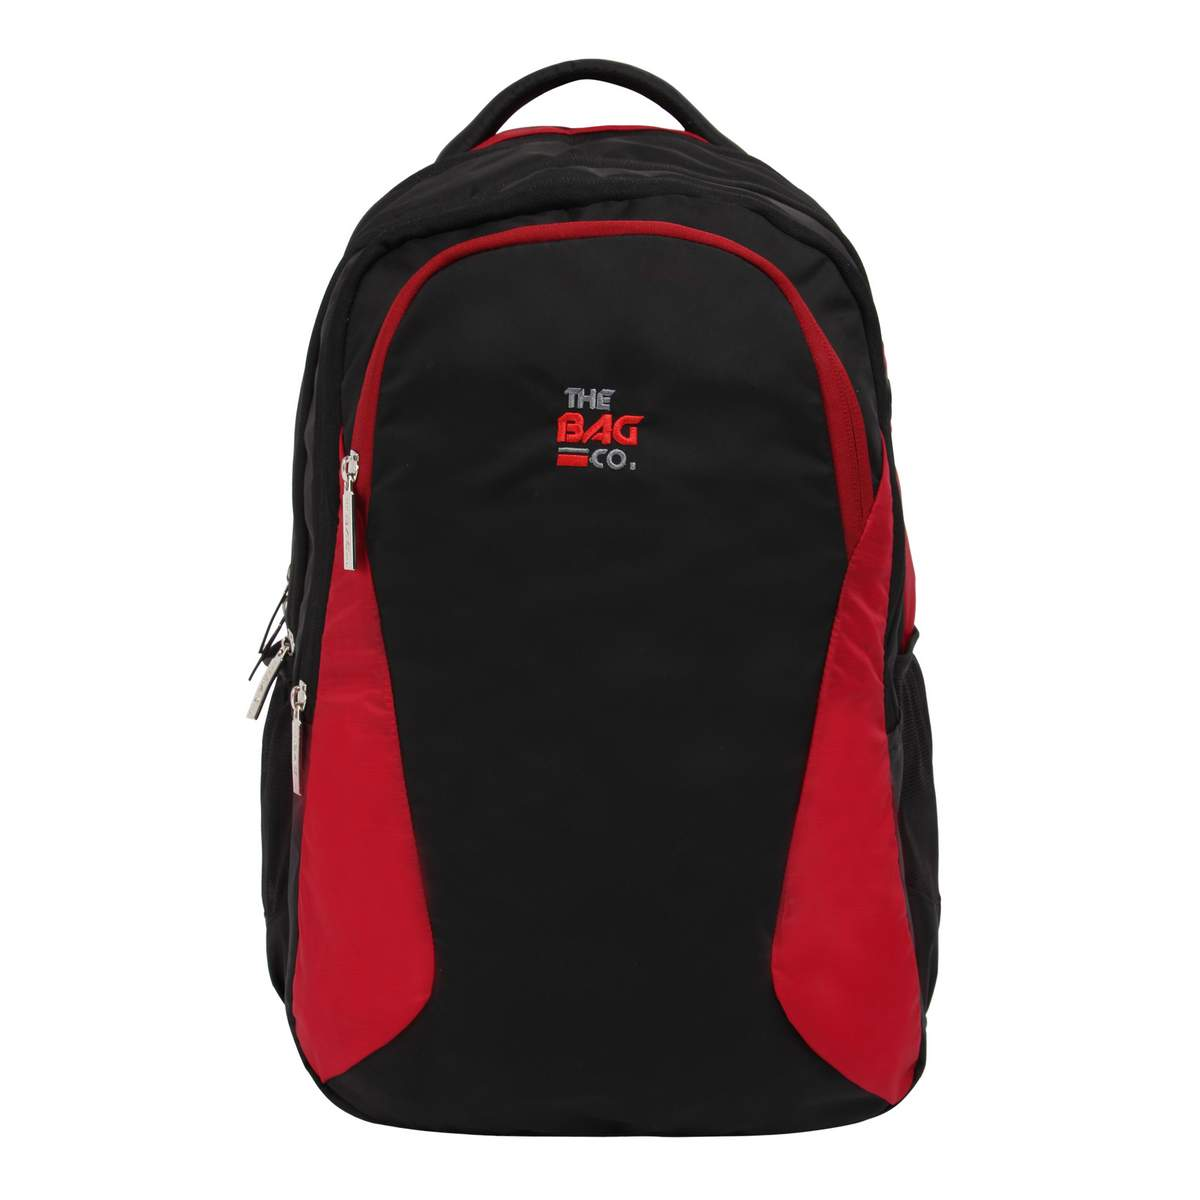 26b5053490 The Bag Co Urban Express School Bag and College Backpack-Sunrise ...